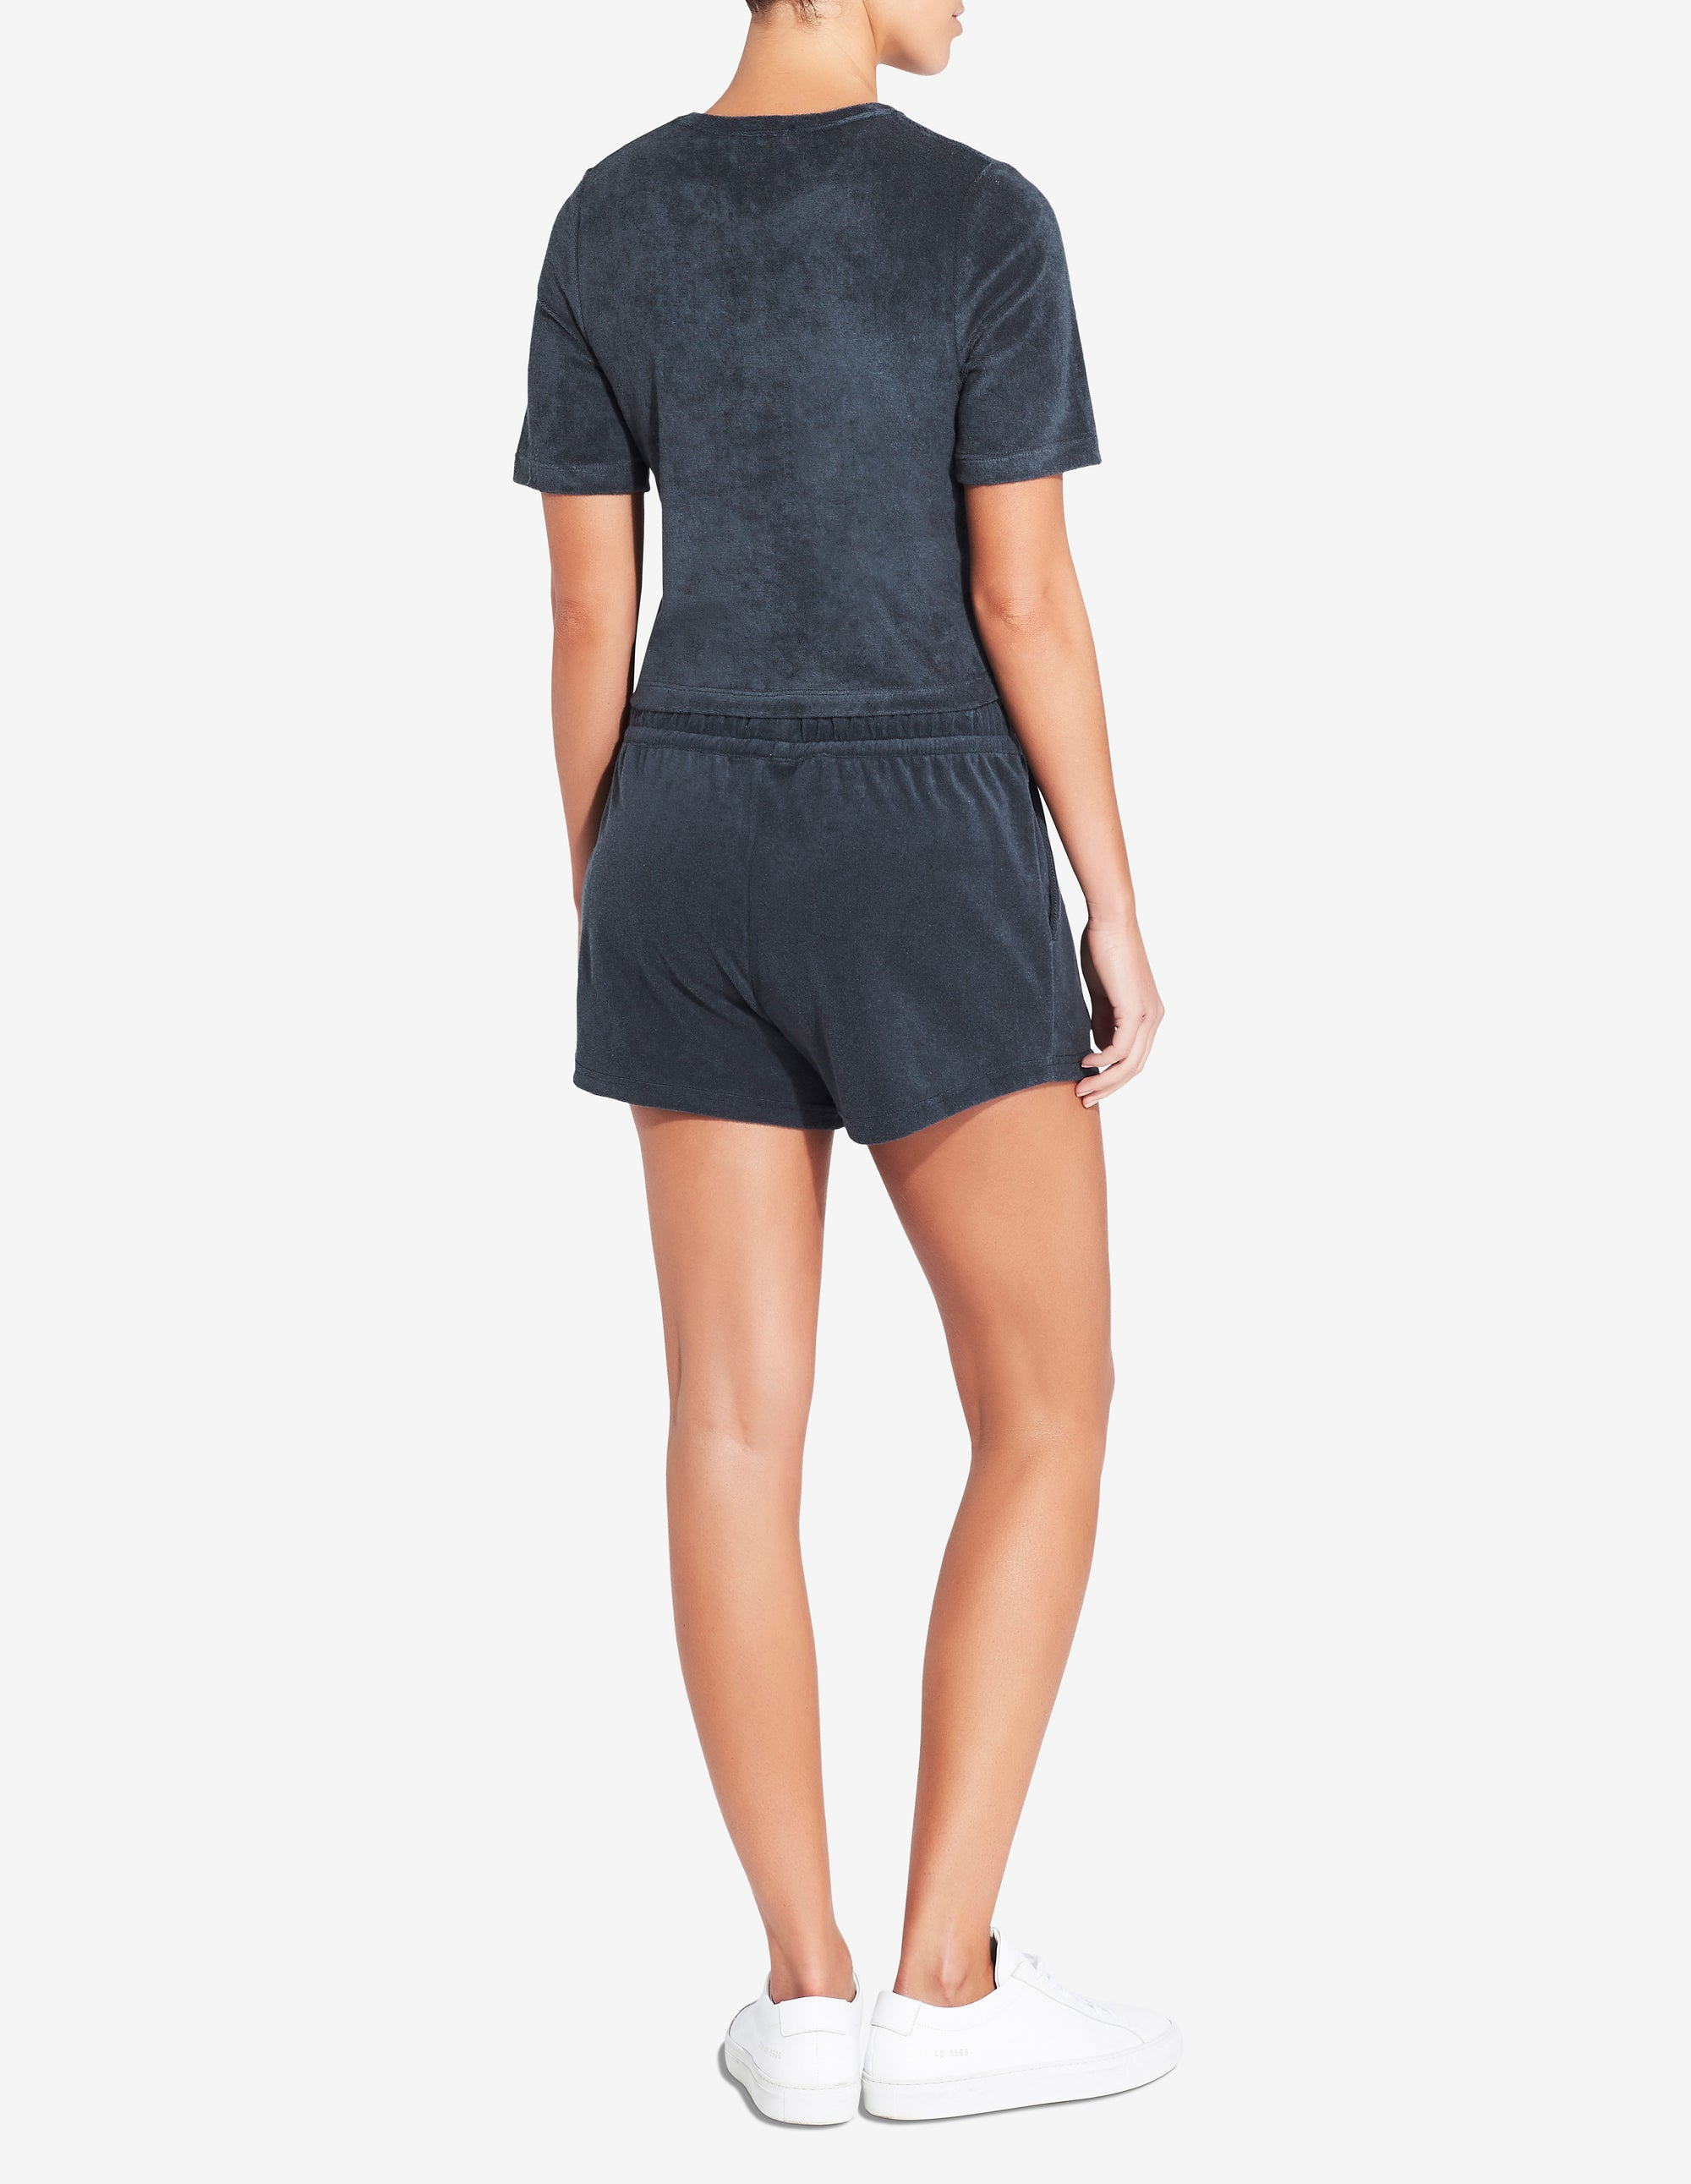 Womens Terry Towel Short - Navy